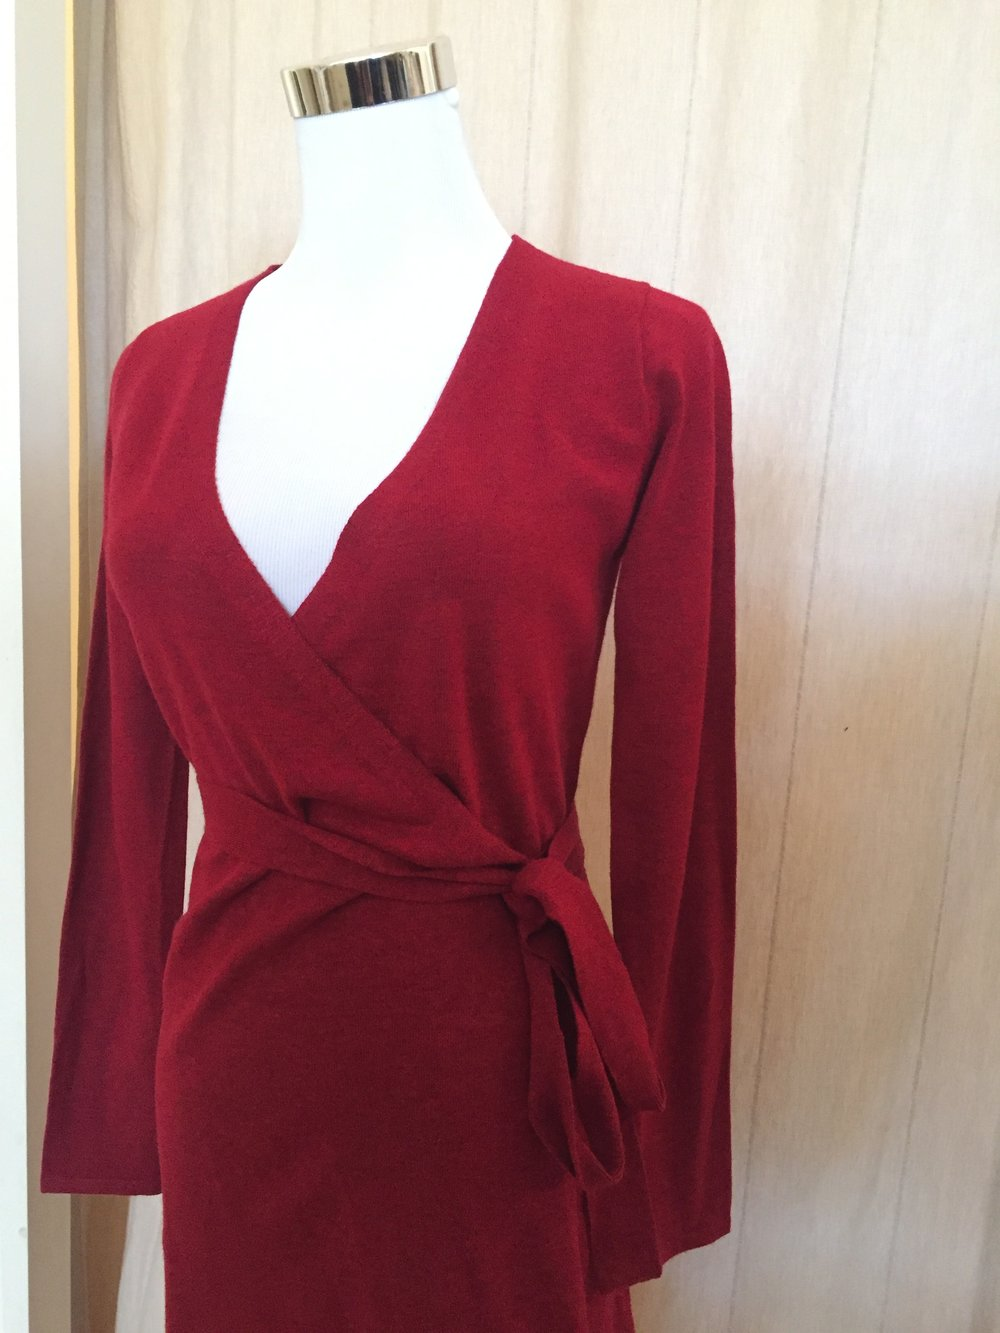 Wrap Dress ($48 Red and Black)